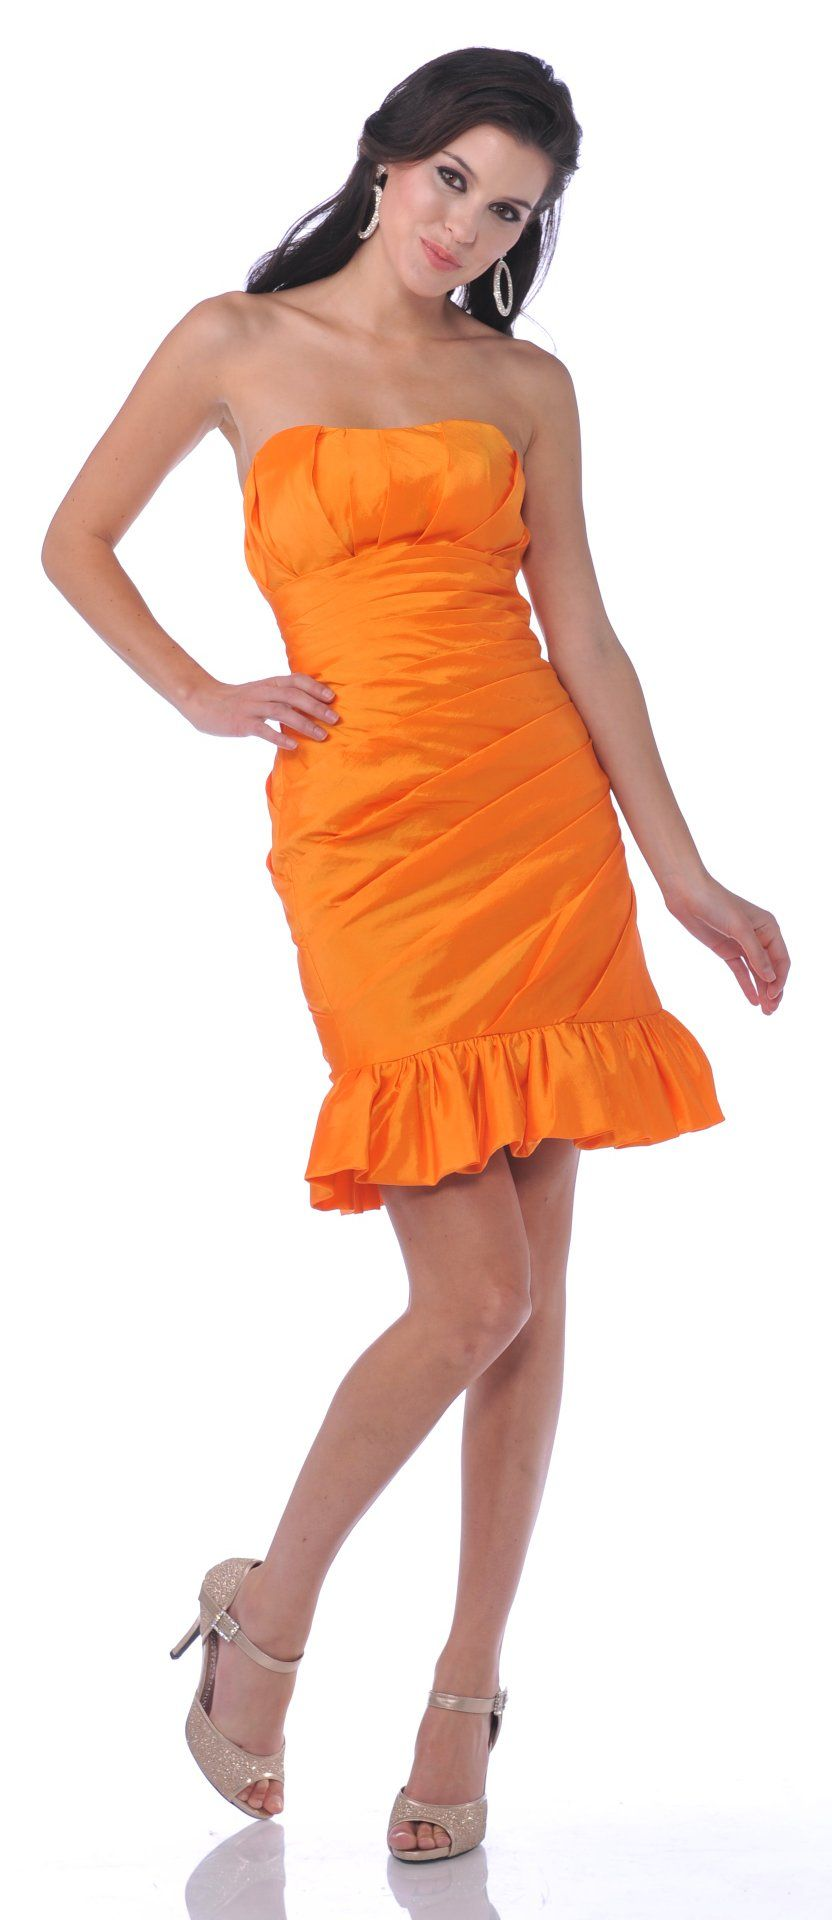 CLEARANCE - Form Fitting Strapless Orange Short Dress Ruffled Skirt ...